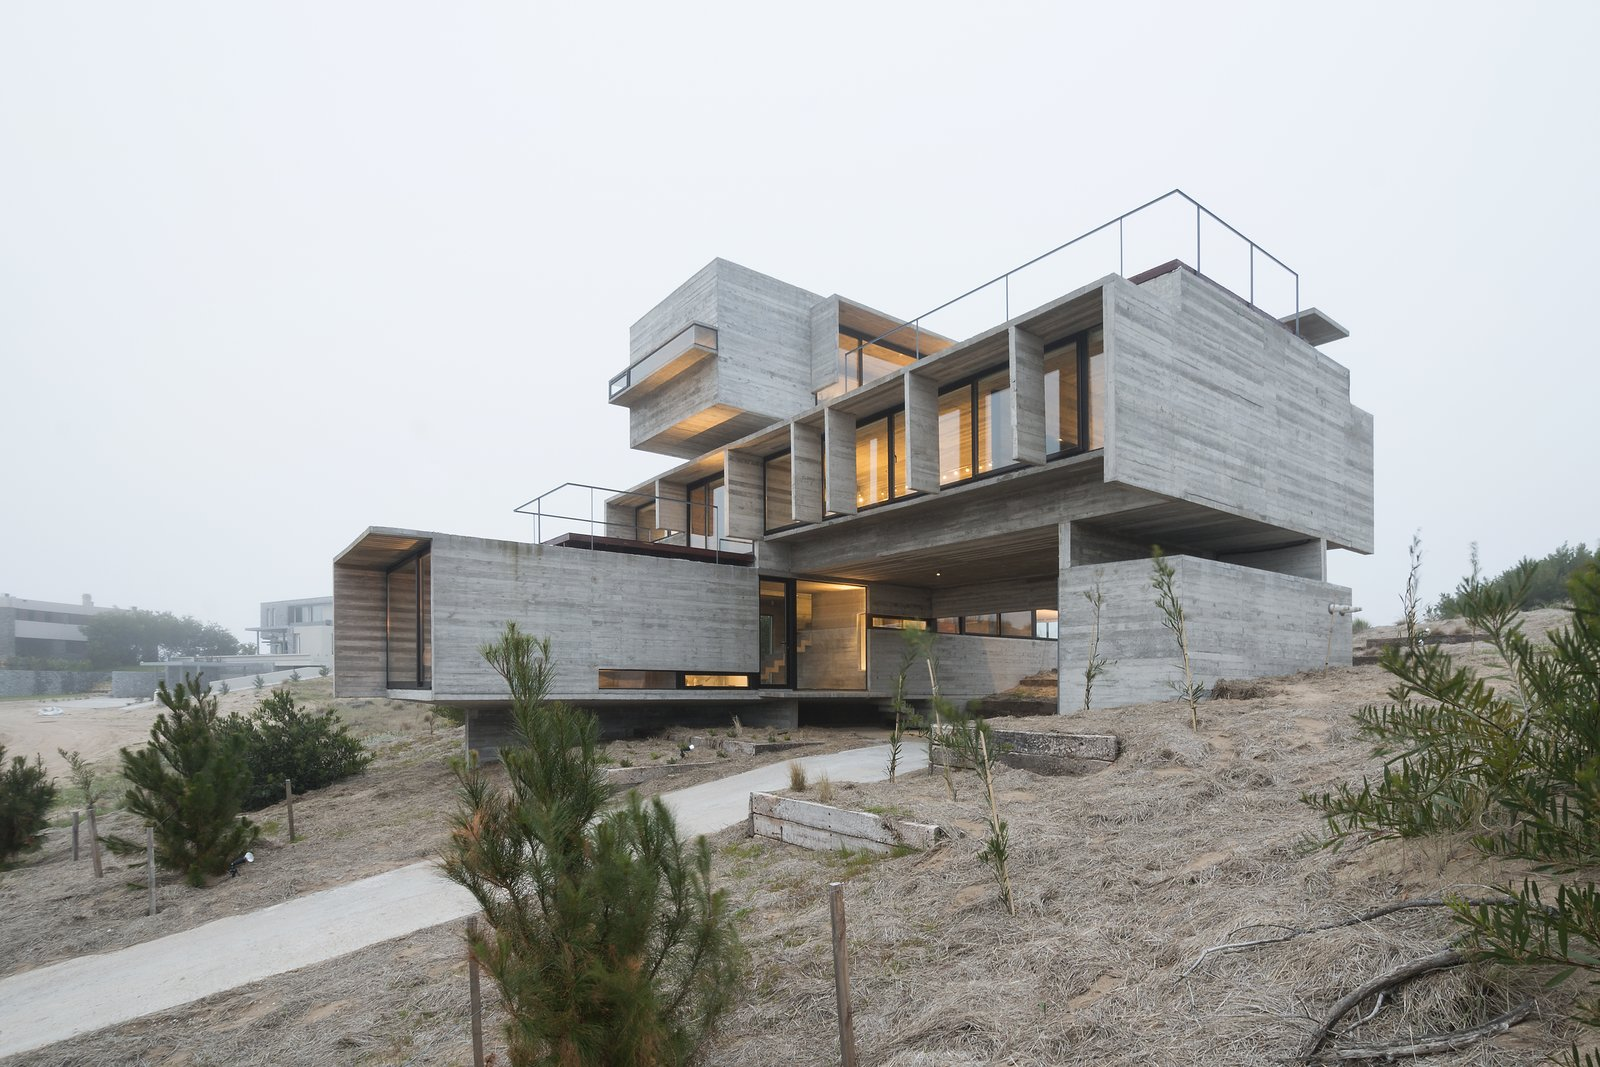 Exterior, Concrete Siding Material, Glass Siding Material, Flat RoofLine, and House Building Type Daring volumetric distribution creates an intriguing, sculptural form.  Best Photos from This Stacked Concrete Home Is Not Your Typical Golf Course Dwelling